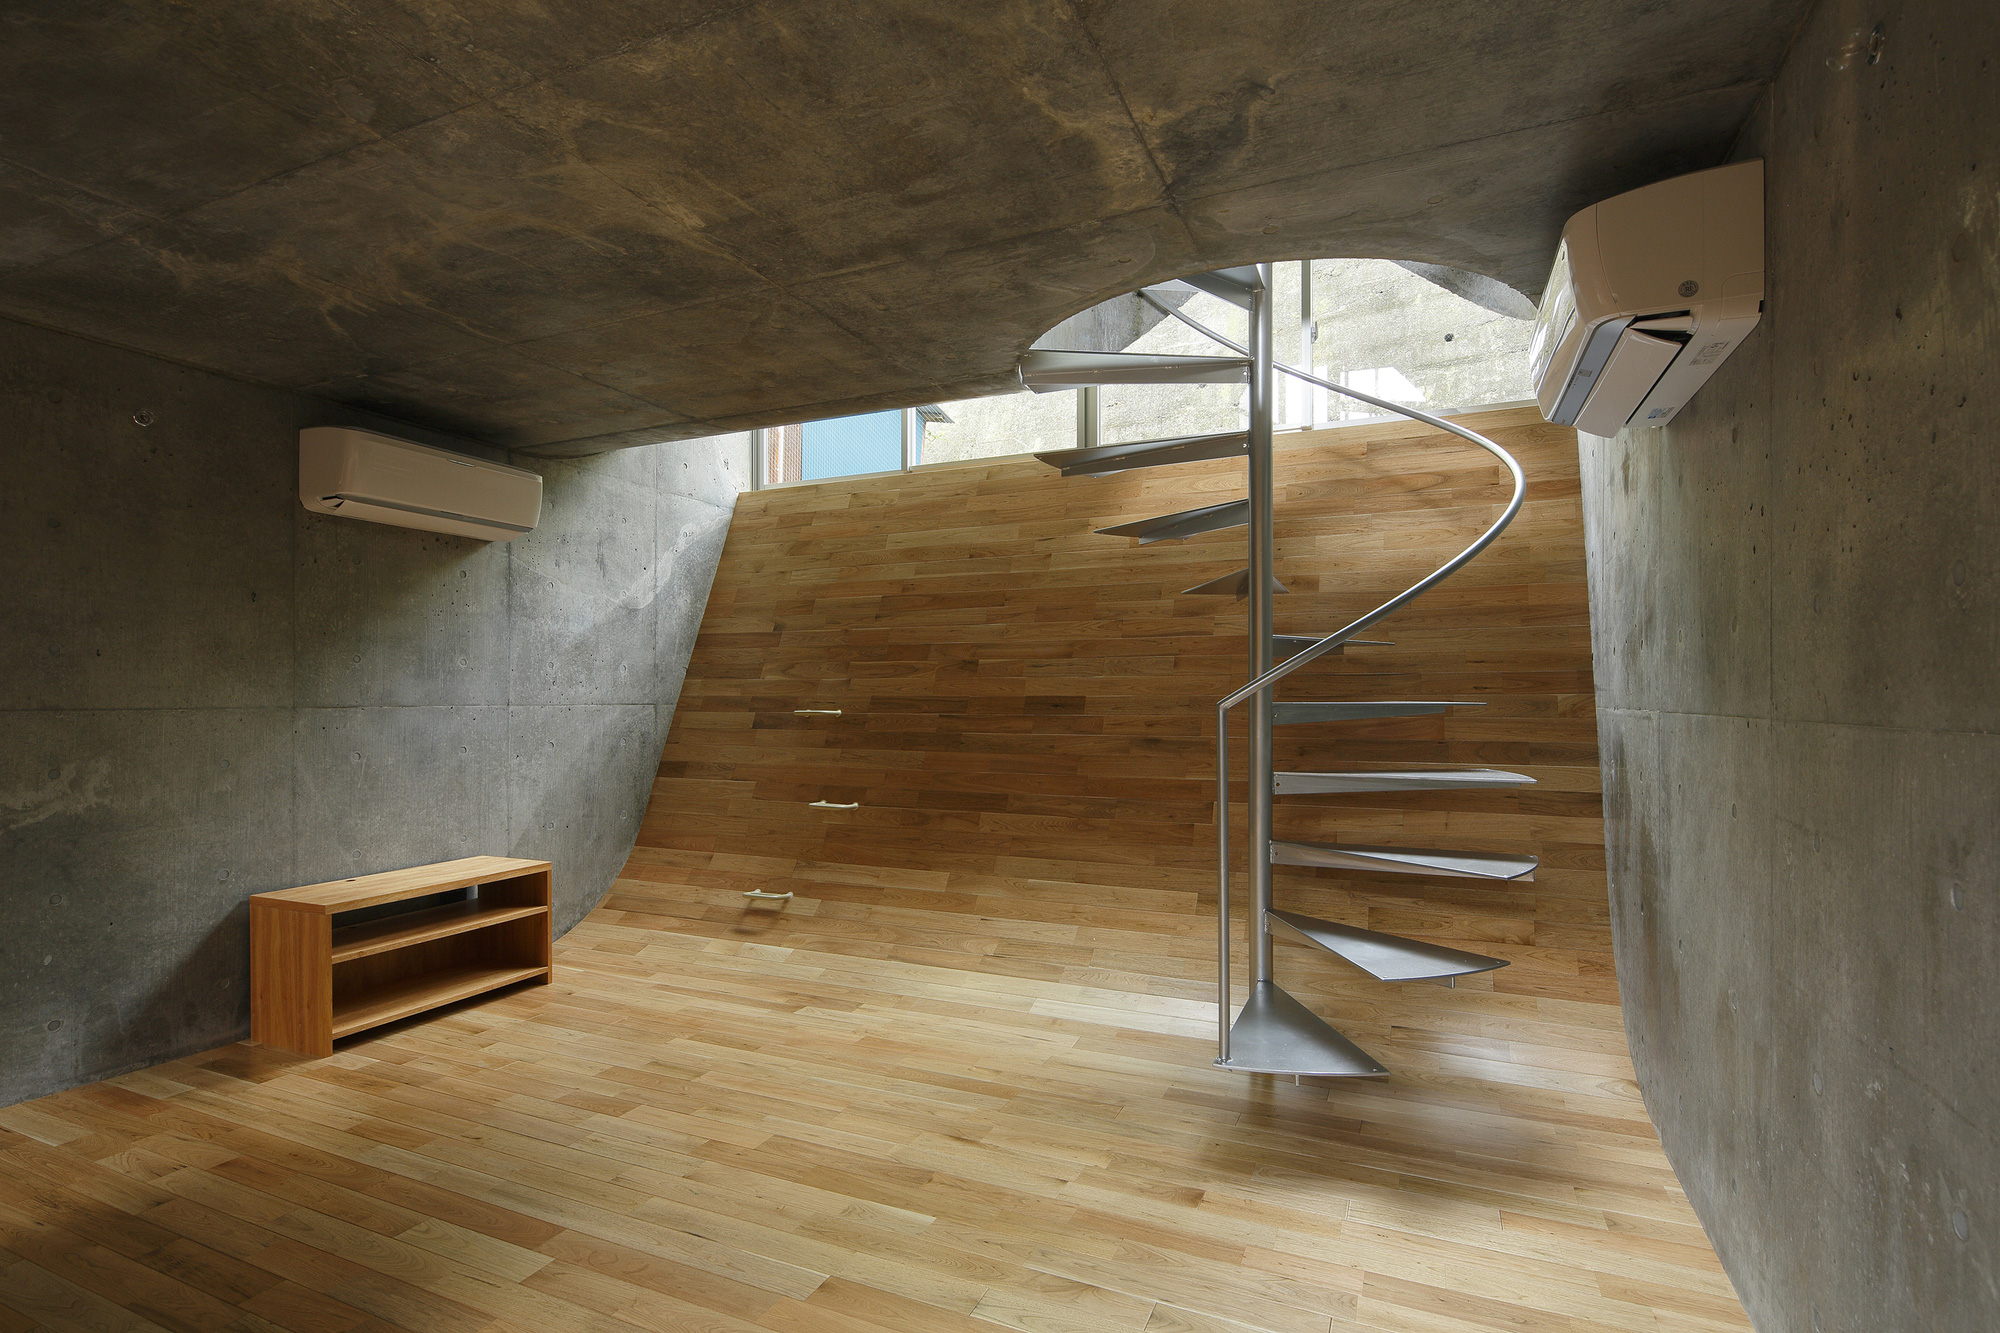 House in Byoubugaura / Takeshi Hosaka (26)